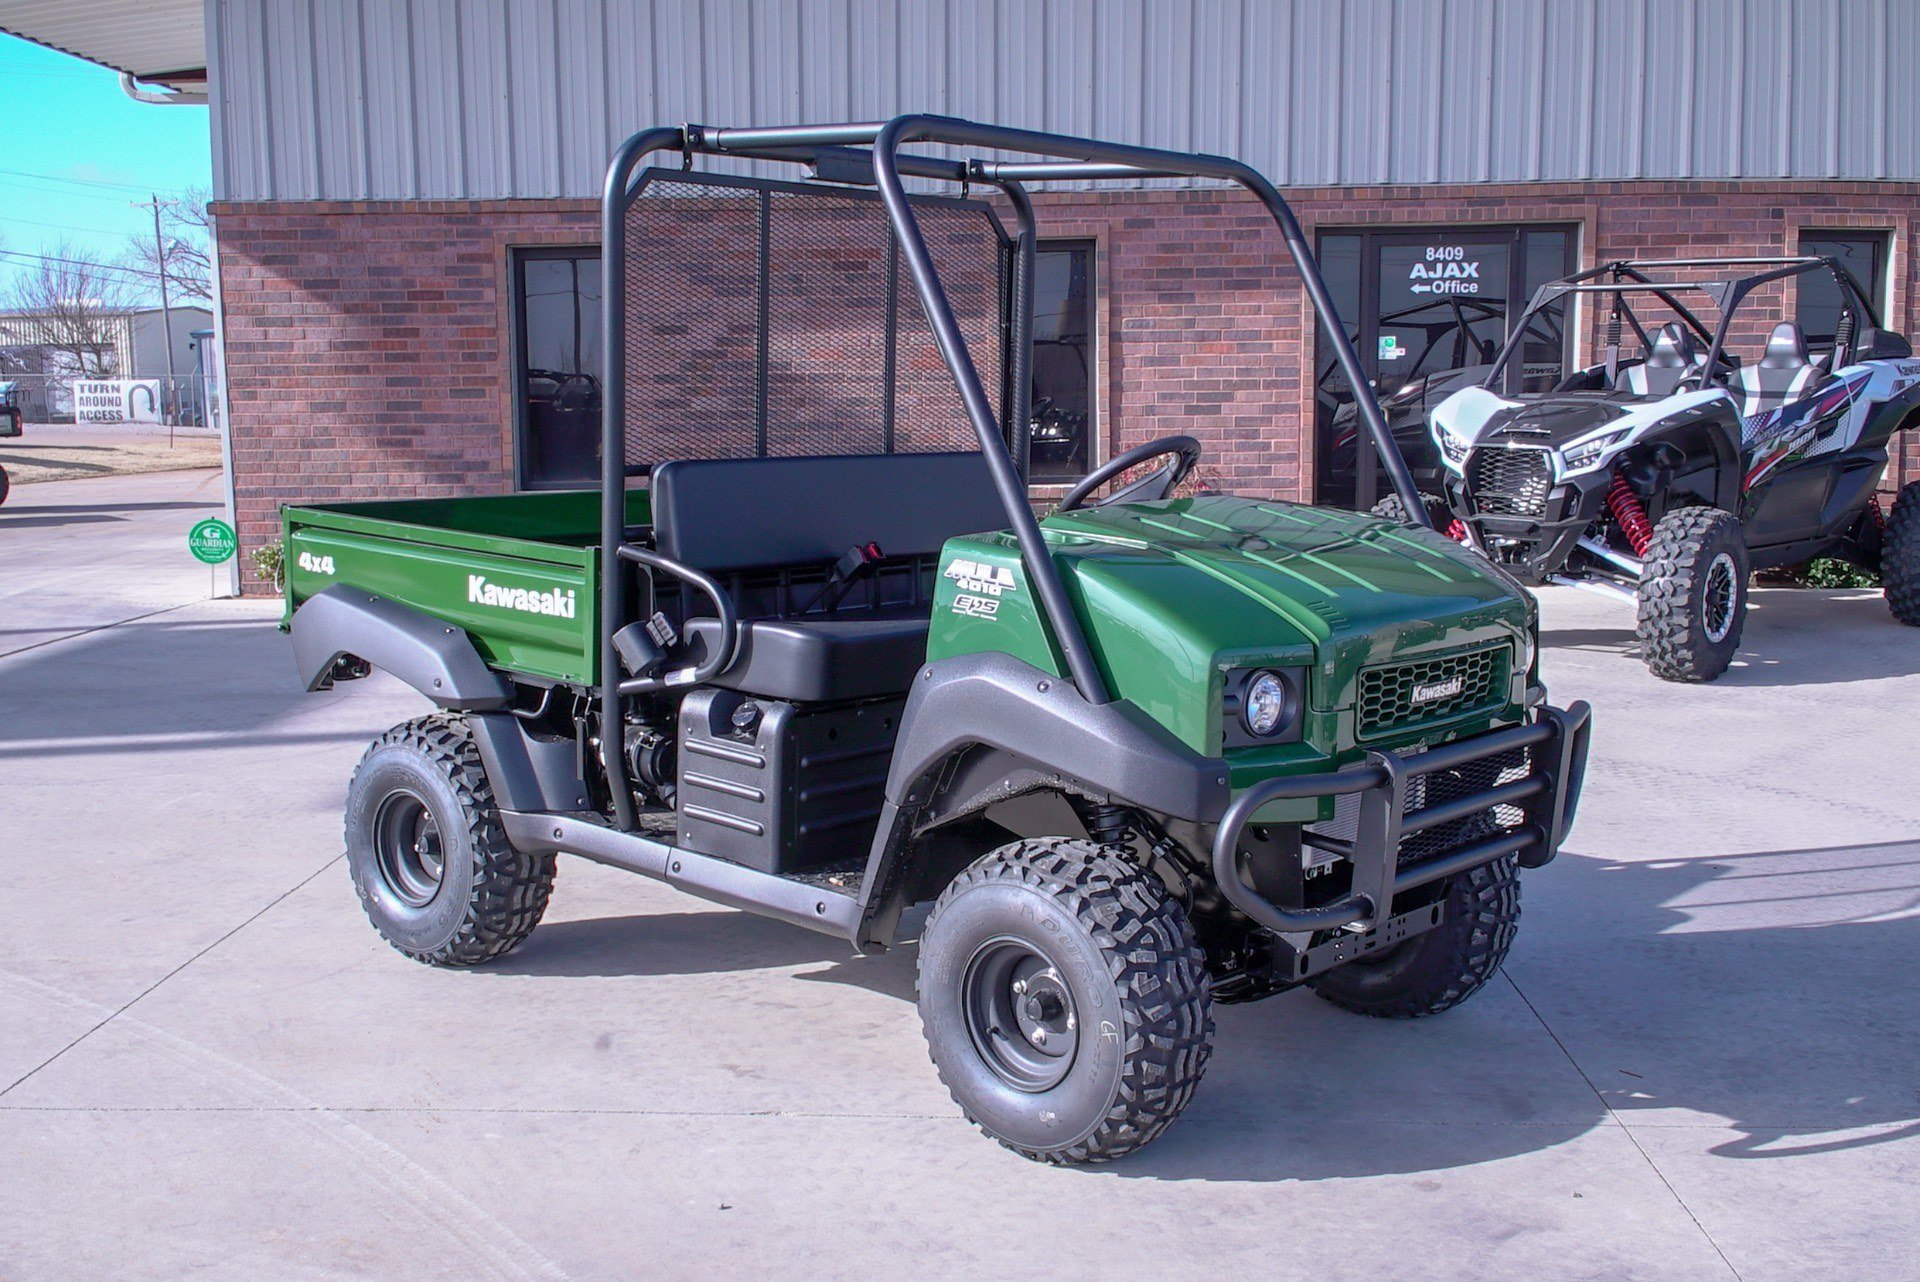 2020 Kawasaki Mule 4010 4x4 in Oklahoma City, Oklahoma - Photo 1